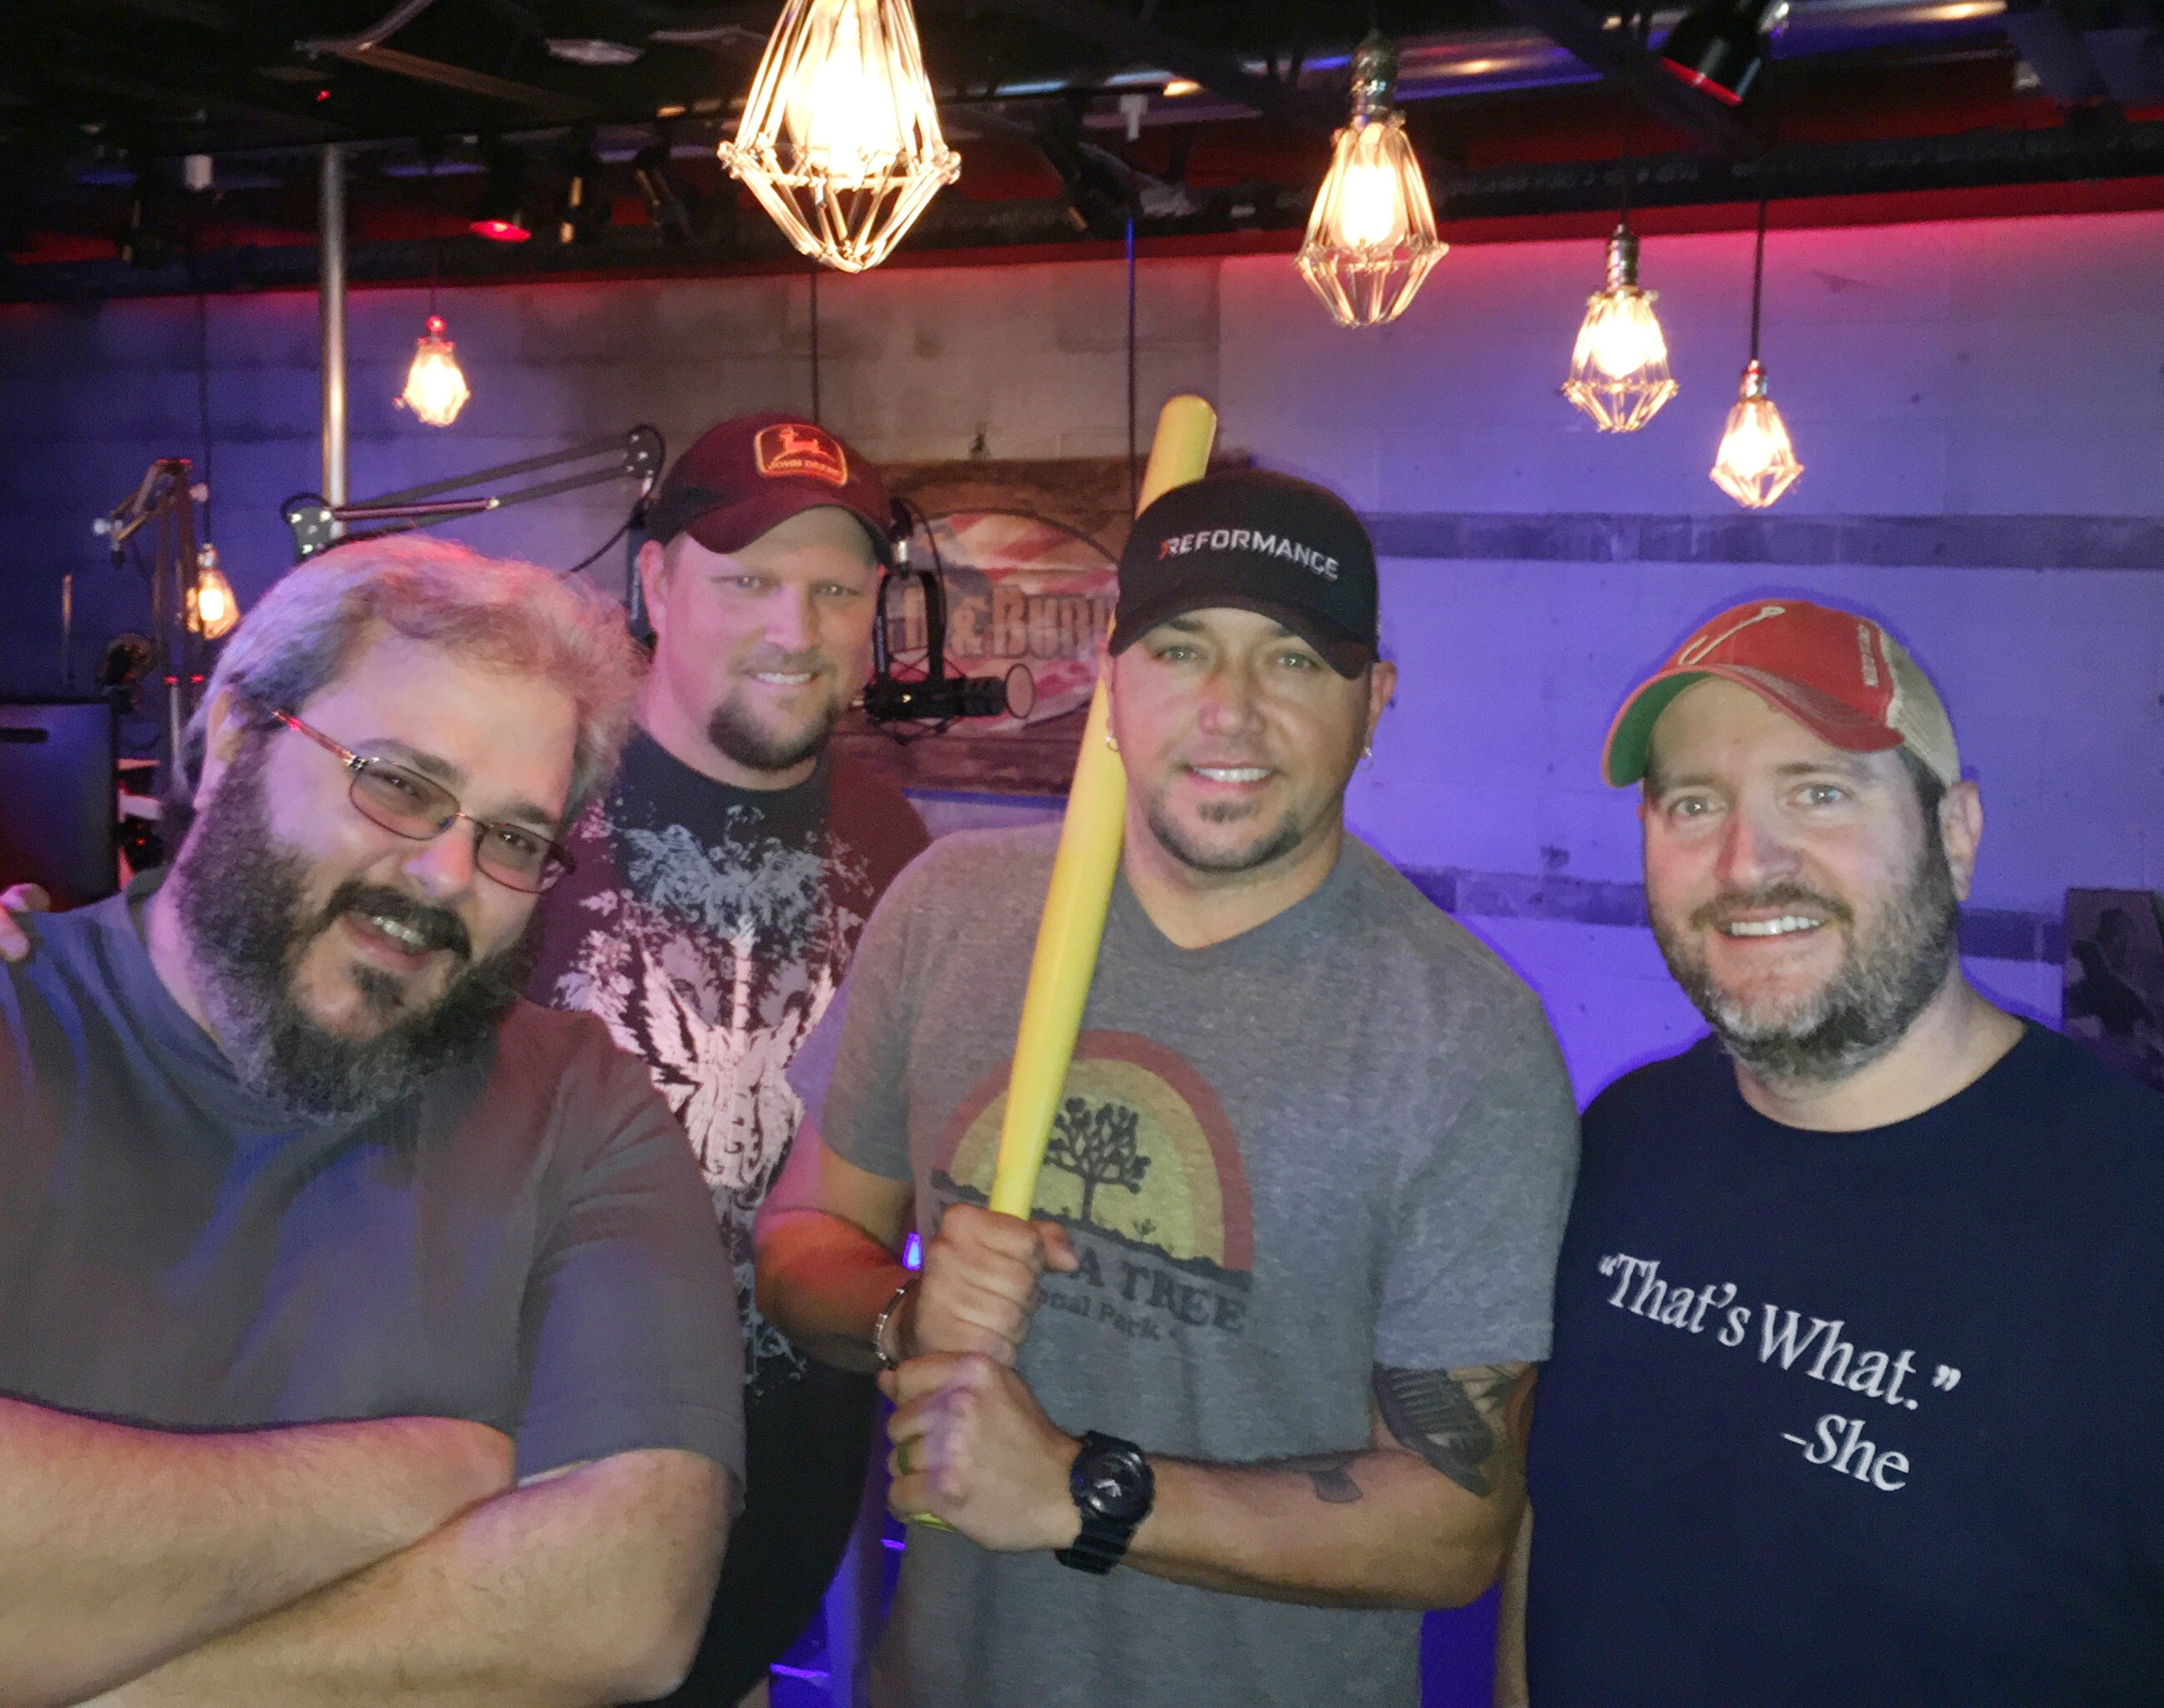 Jason Aldean, ACM Entertainer of the Year visits Big D and Bubba in studio